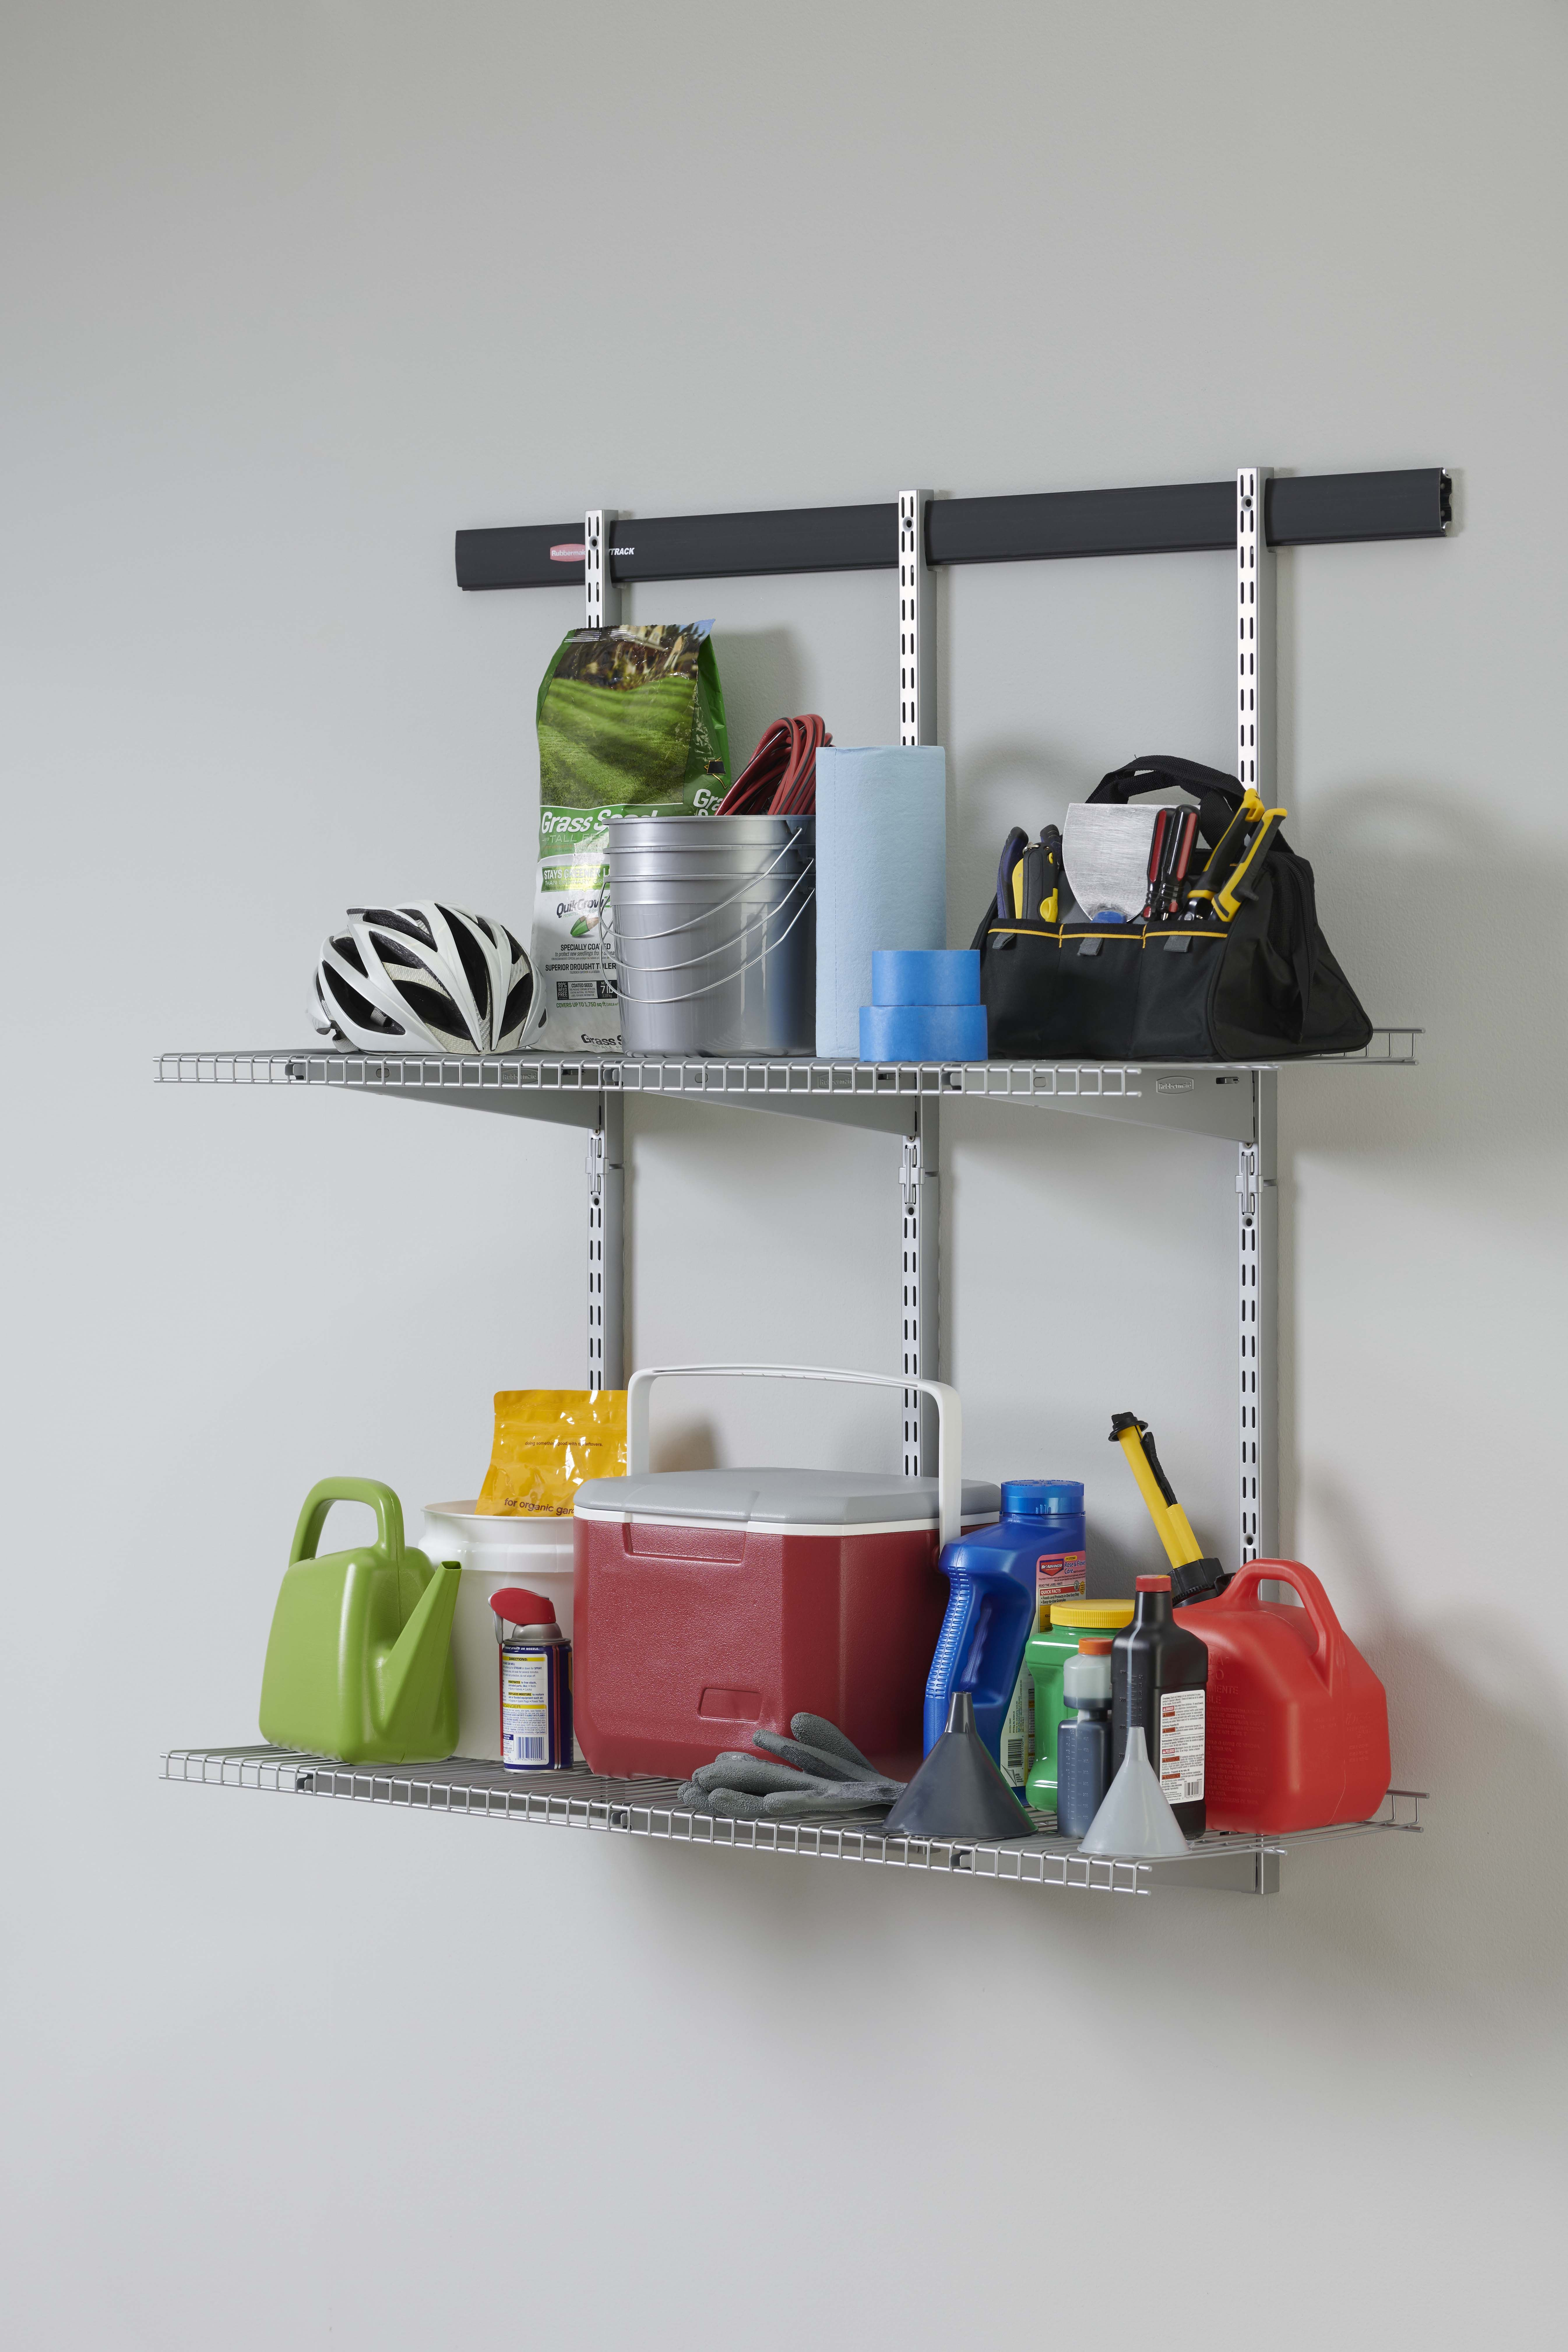 Rubbermaid Fasttrack Garage 84 In Hang Rail Track Storage System 1784416 The Home Depot Rubbermaid Garage Storage Wall Storage Systems Patio Storage